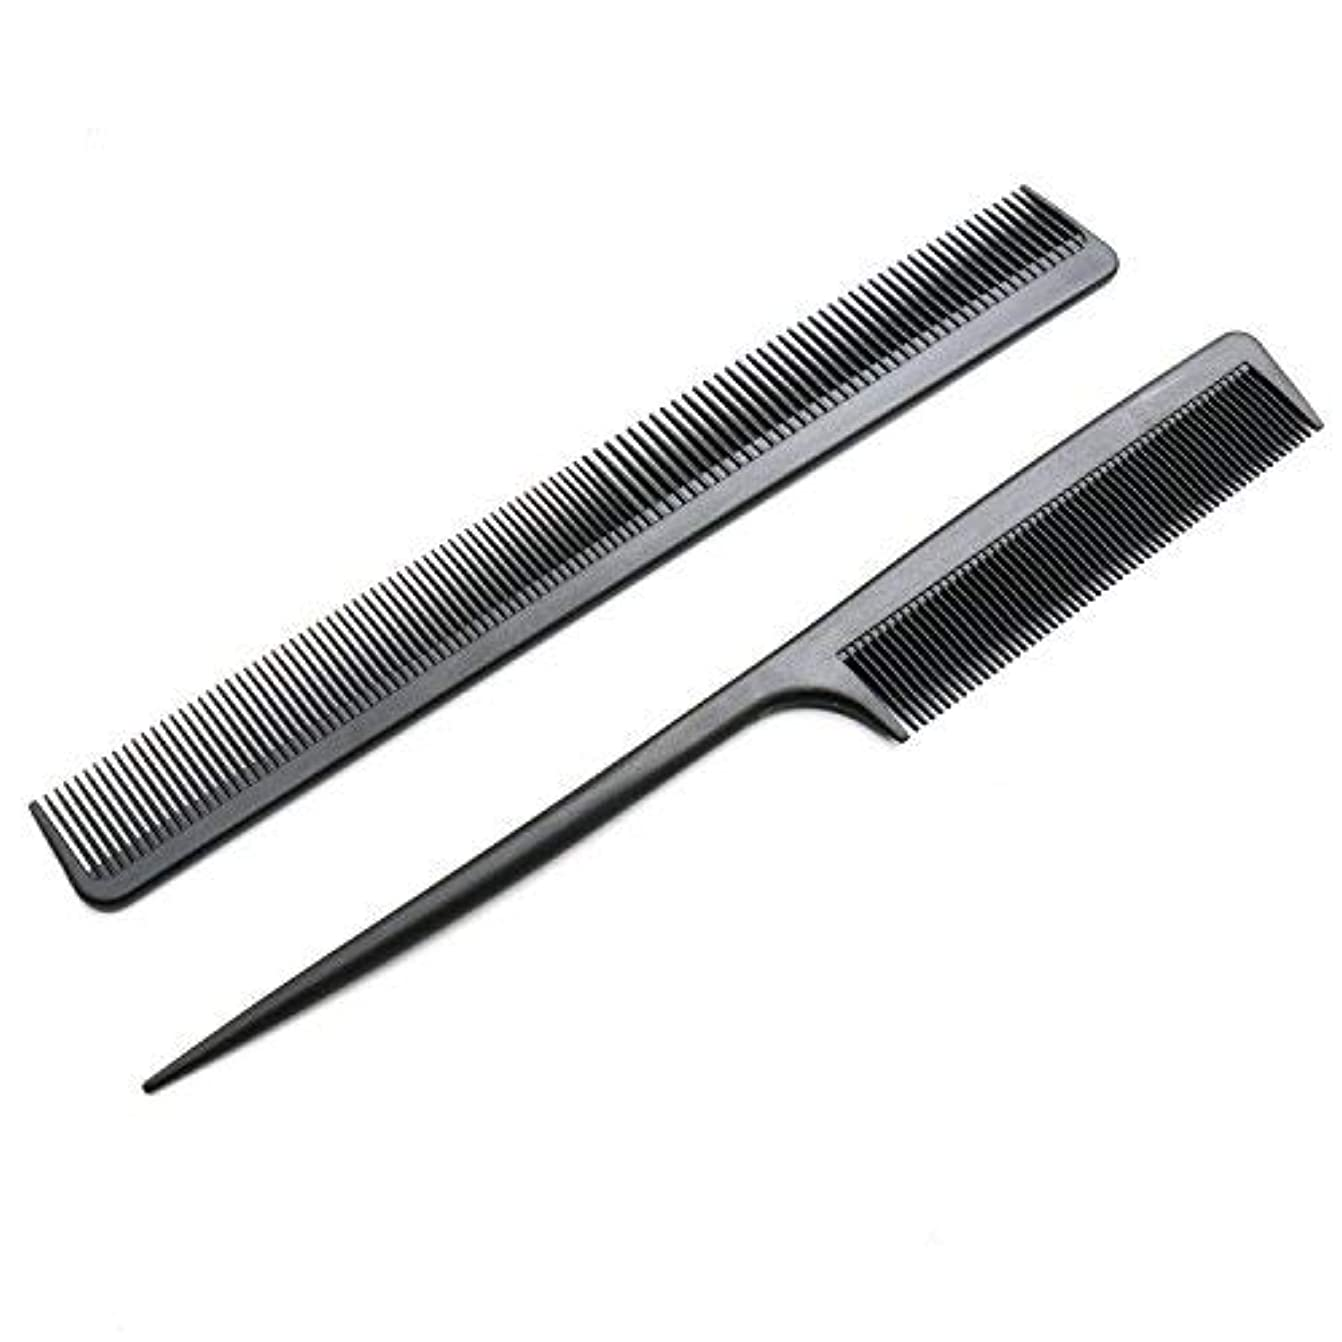 宗教的なマングル歯科の2 Pack Carbon Fiber Anti Static Chemical And Heat Resistant Tail Comb For All Hair Types,Black [並行輸入品]